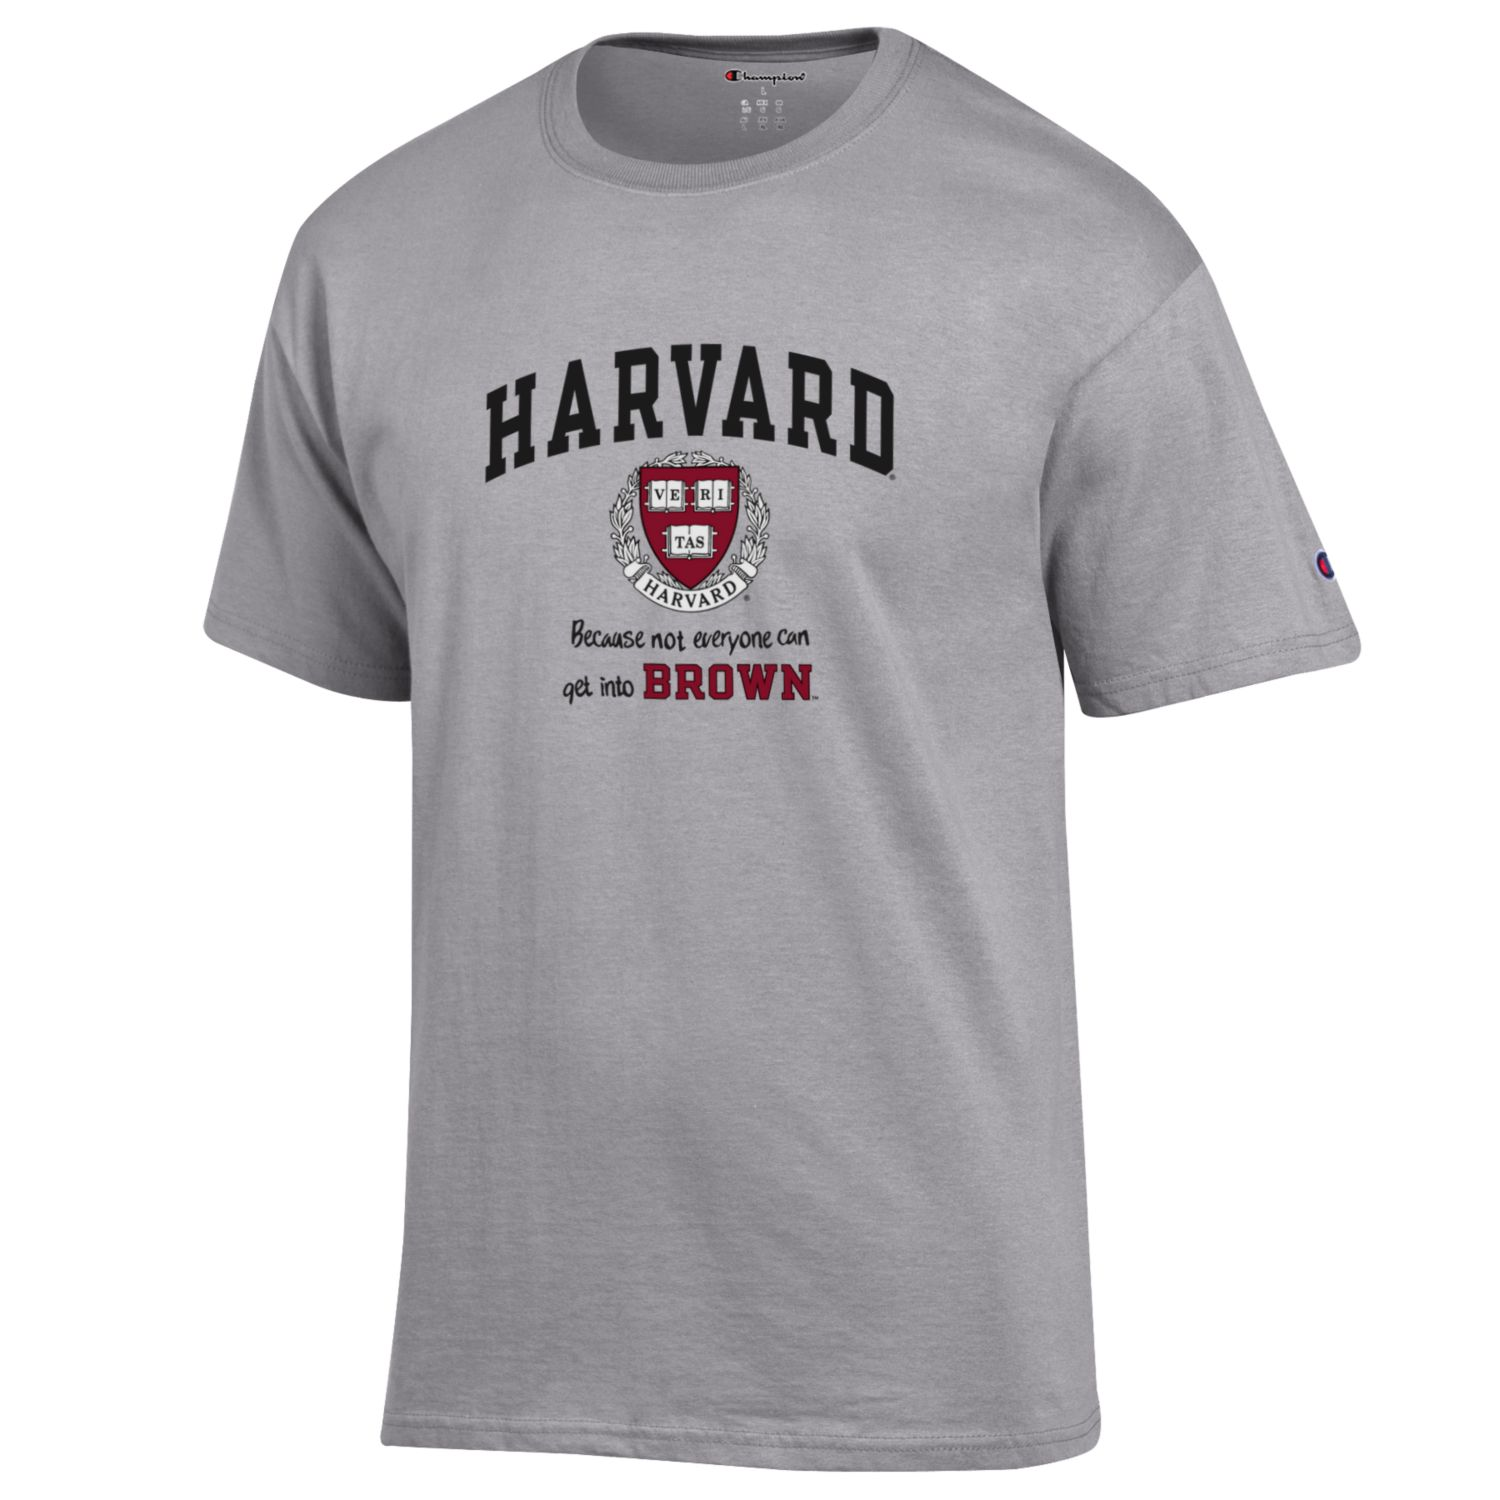 Image For Champion Jersey Short Sleeve Harvard Tee